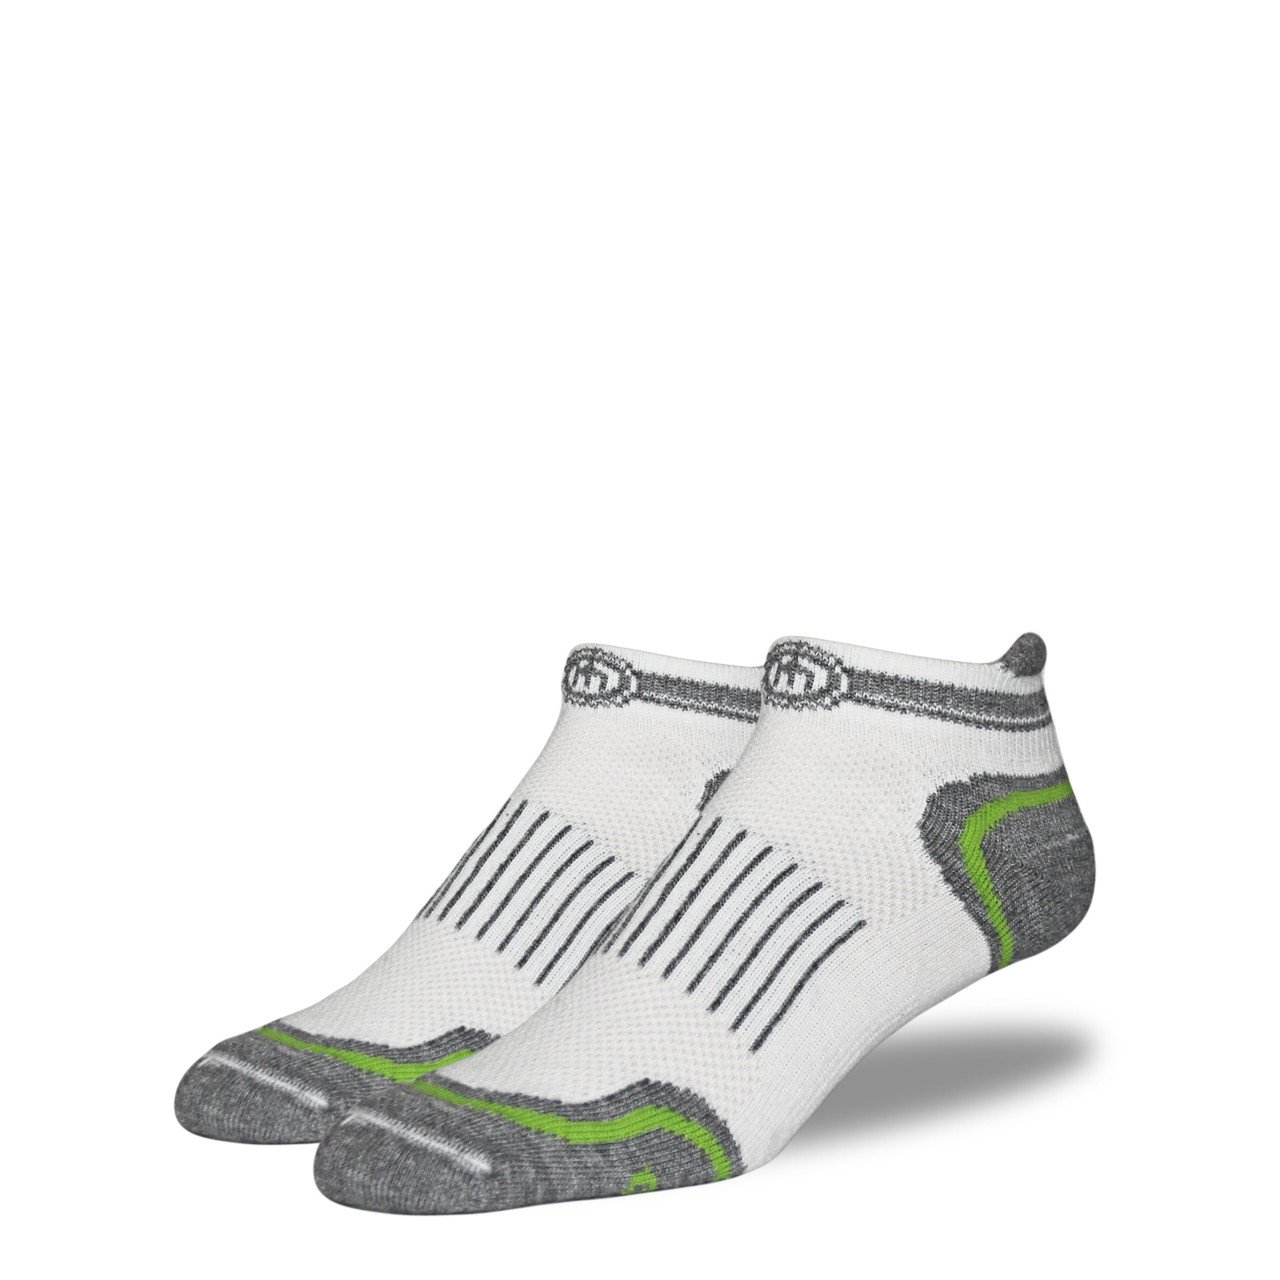 Have an athlete in your life? Get them the hi-tech comfort they deserve!  Low-rise athletic sock, 3-pack $28